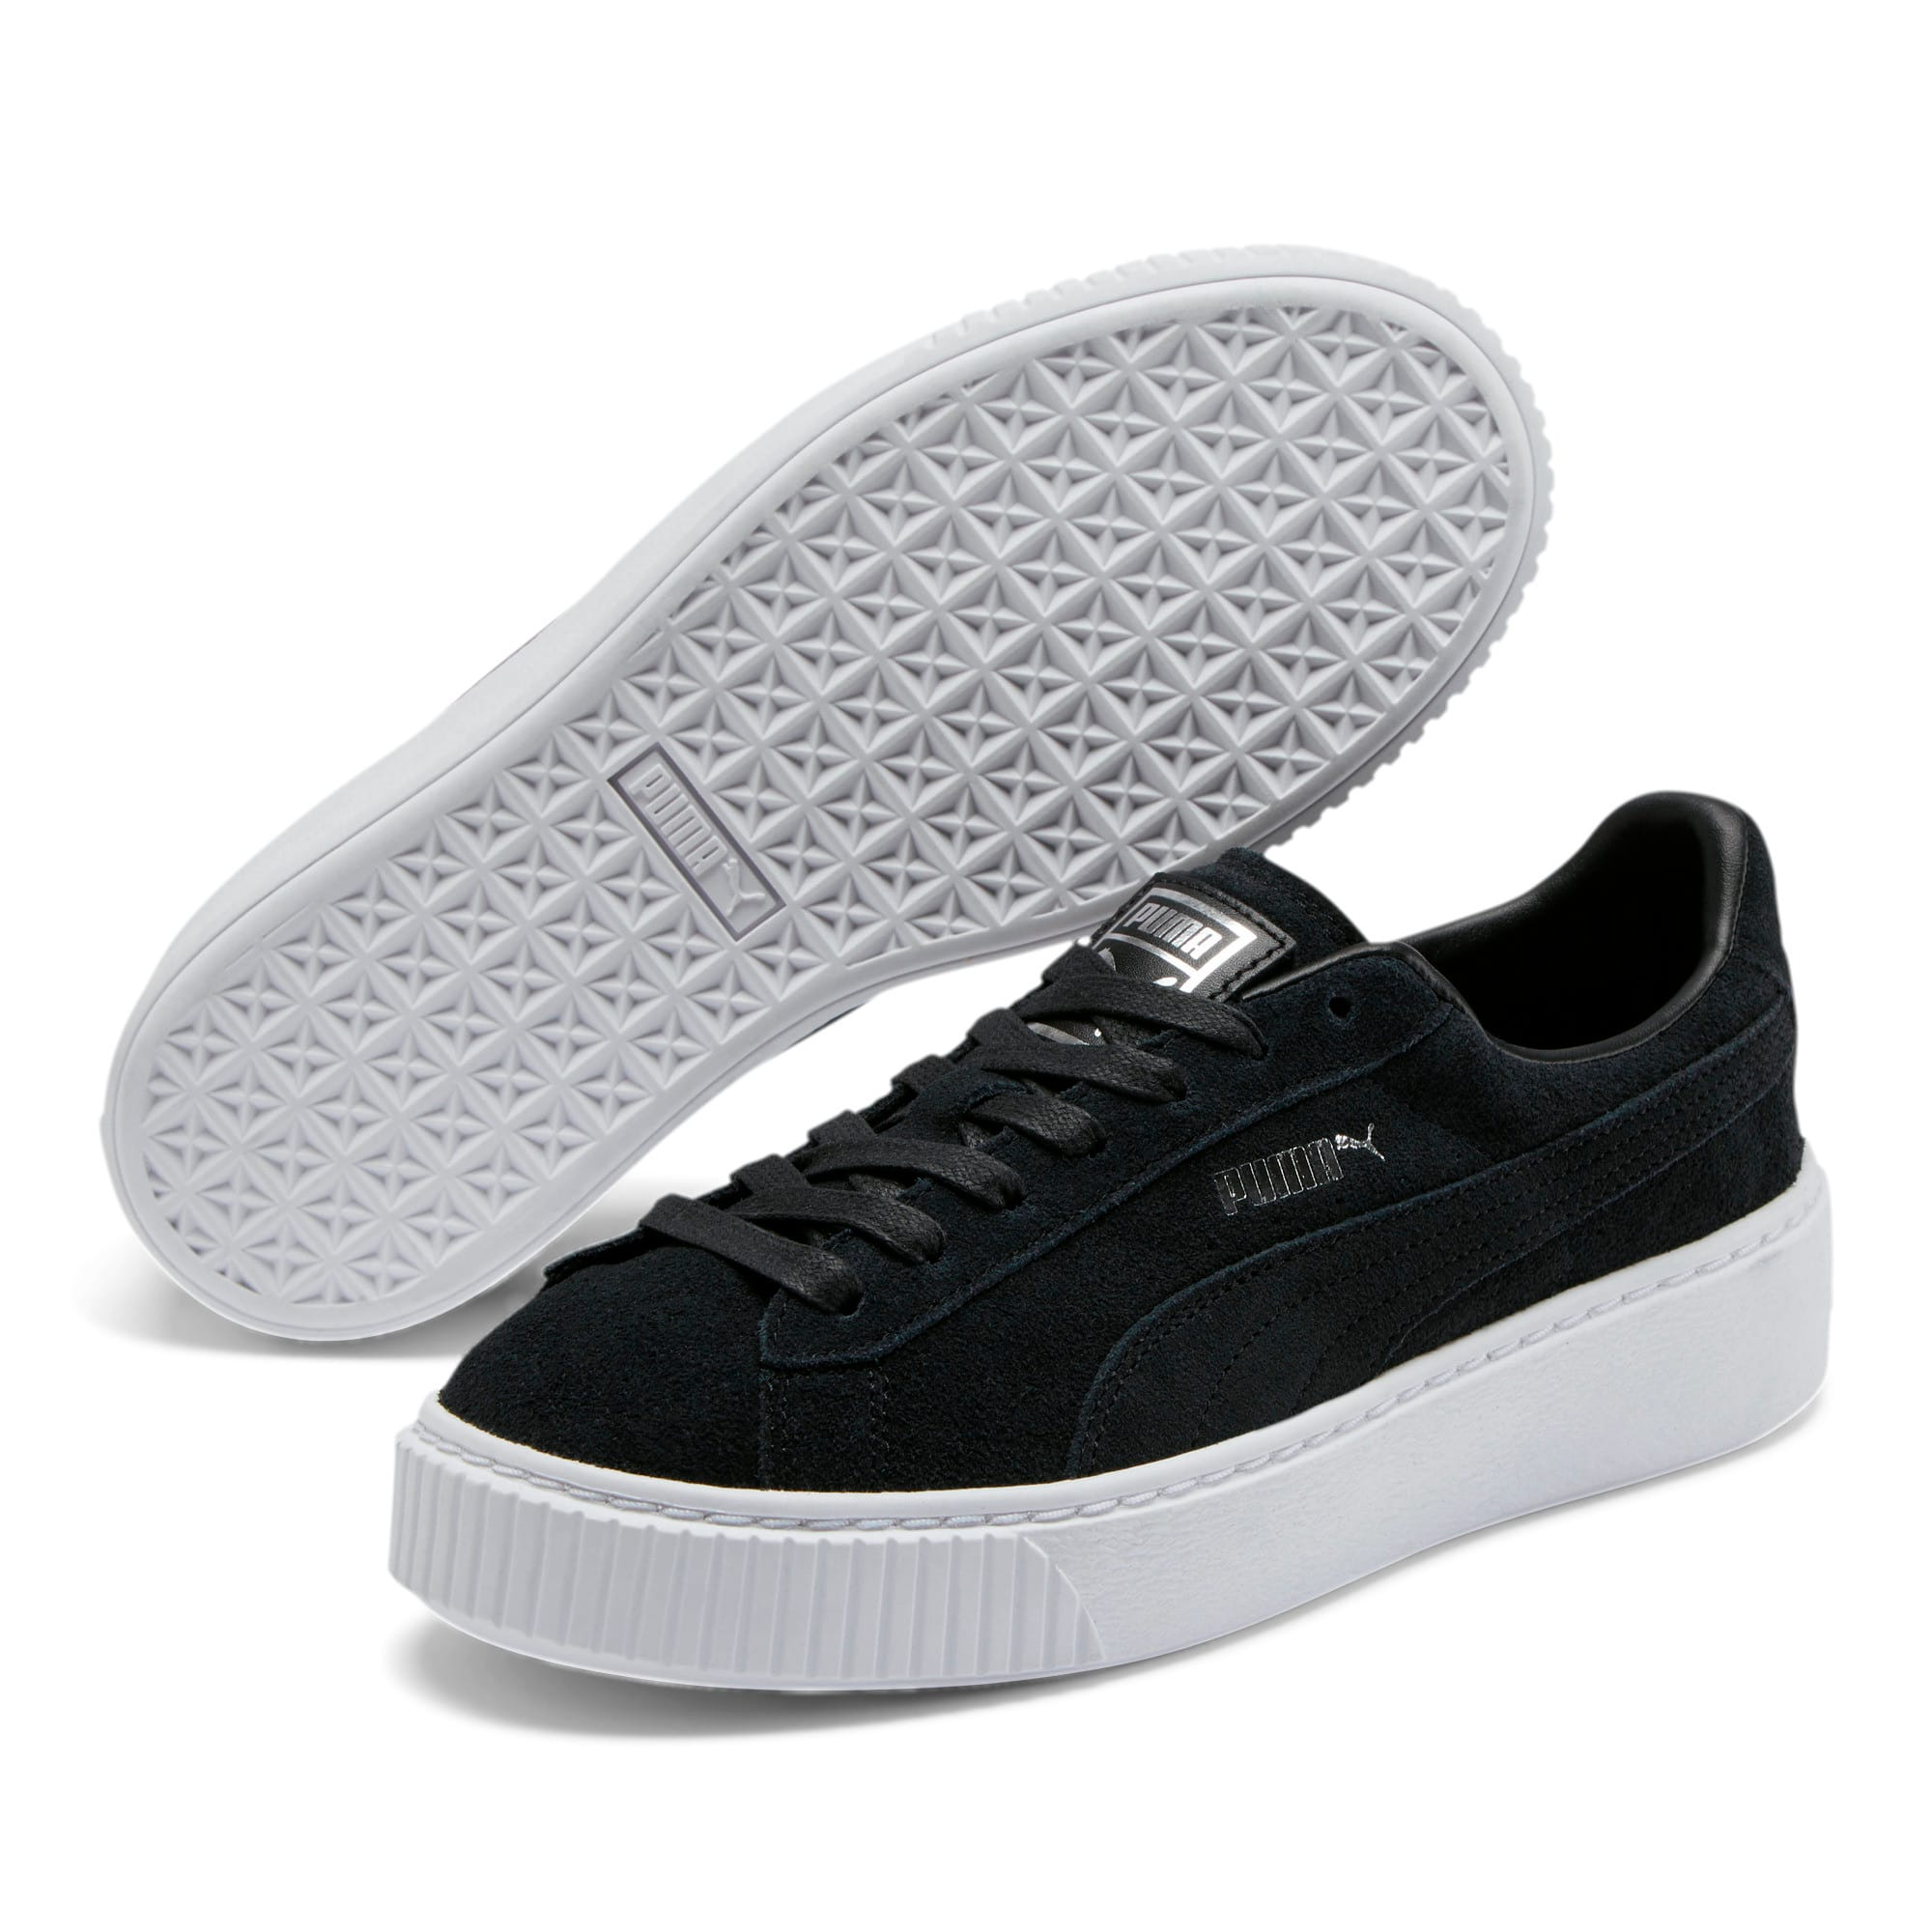 Thumbnail 2 of Suede Platform Women's Sneakers, Puma Black-Black-Puma White, medium